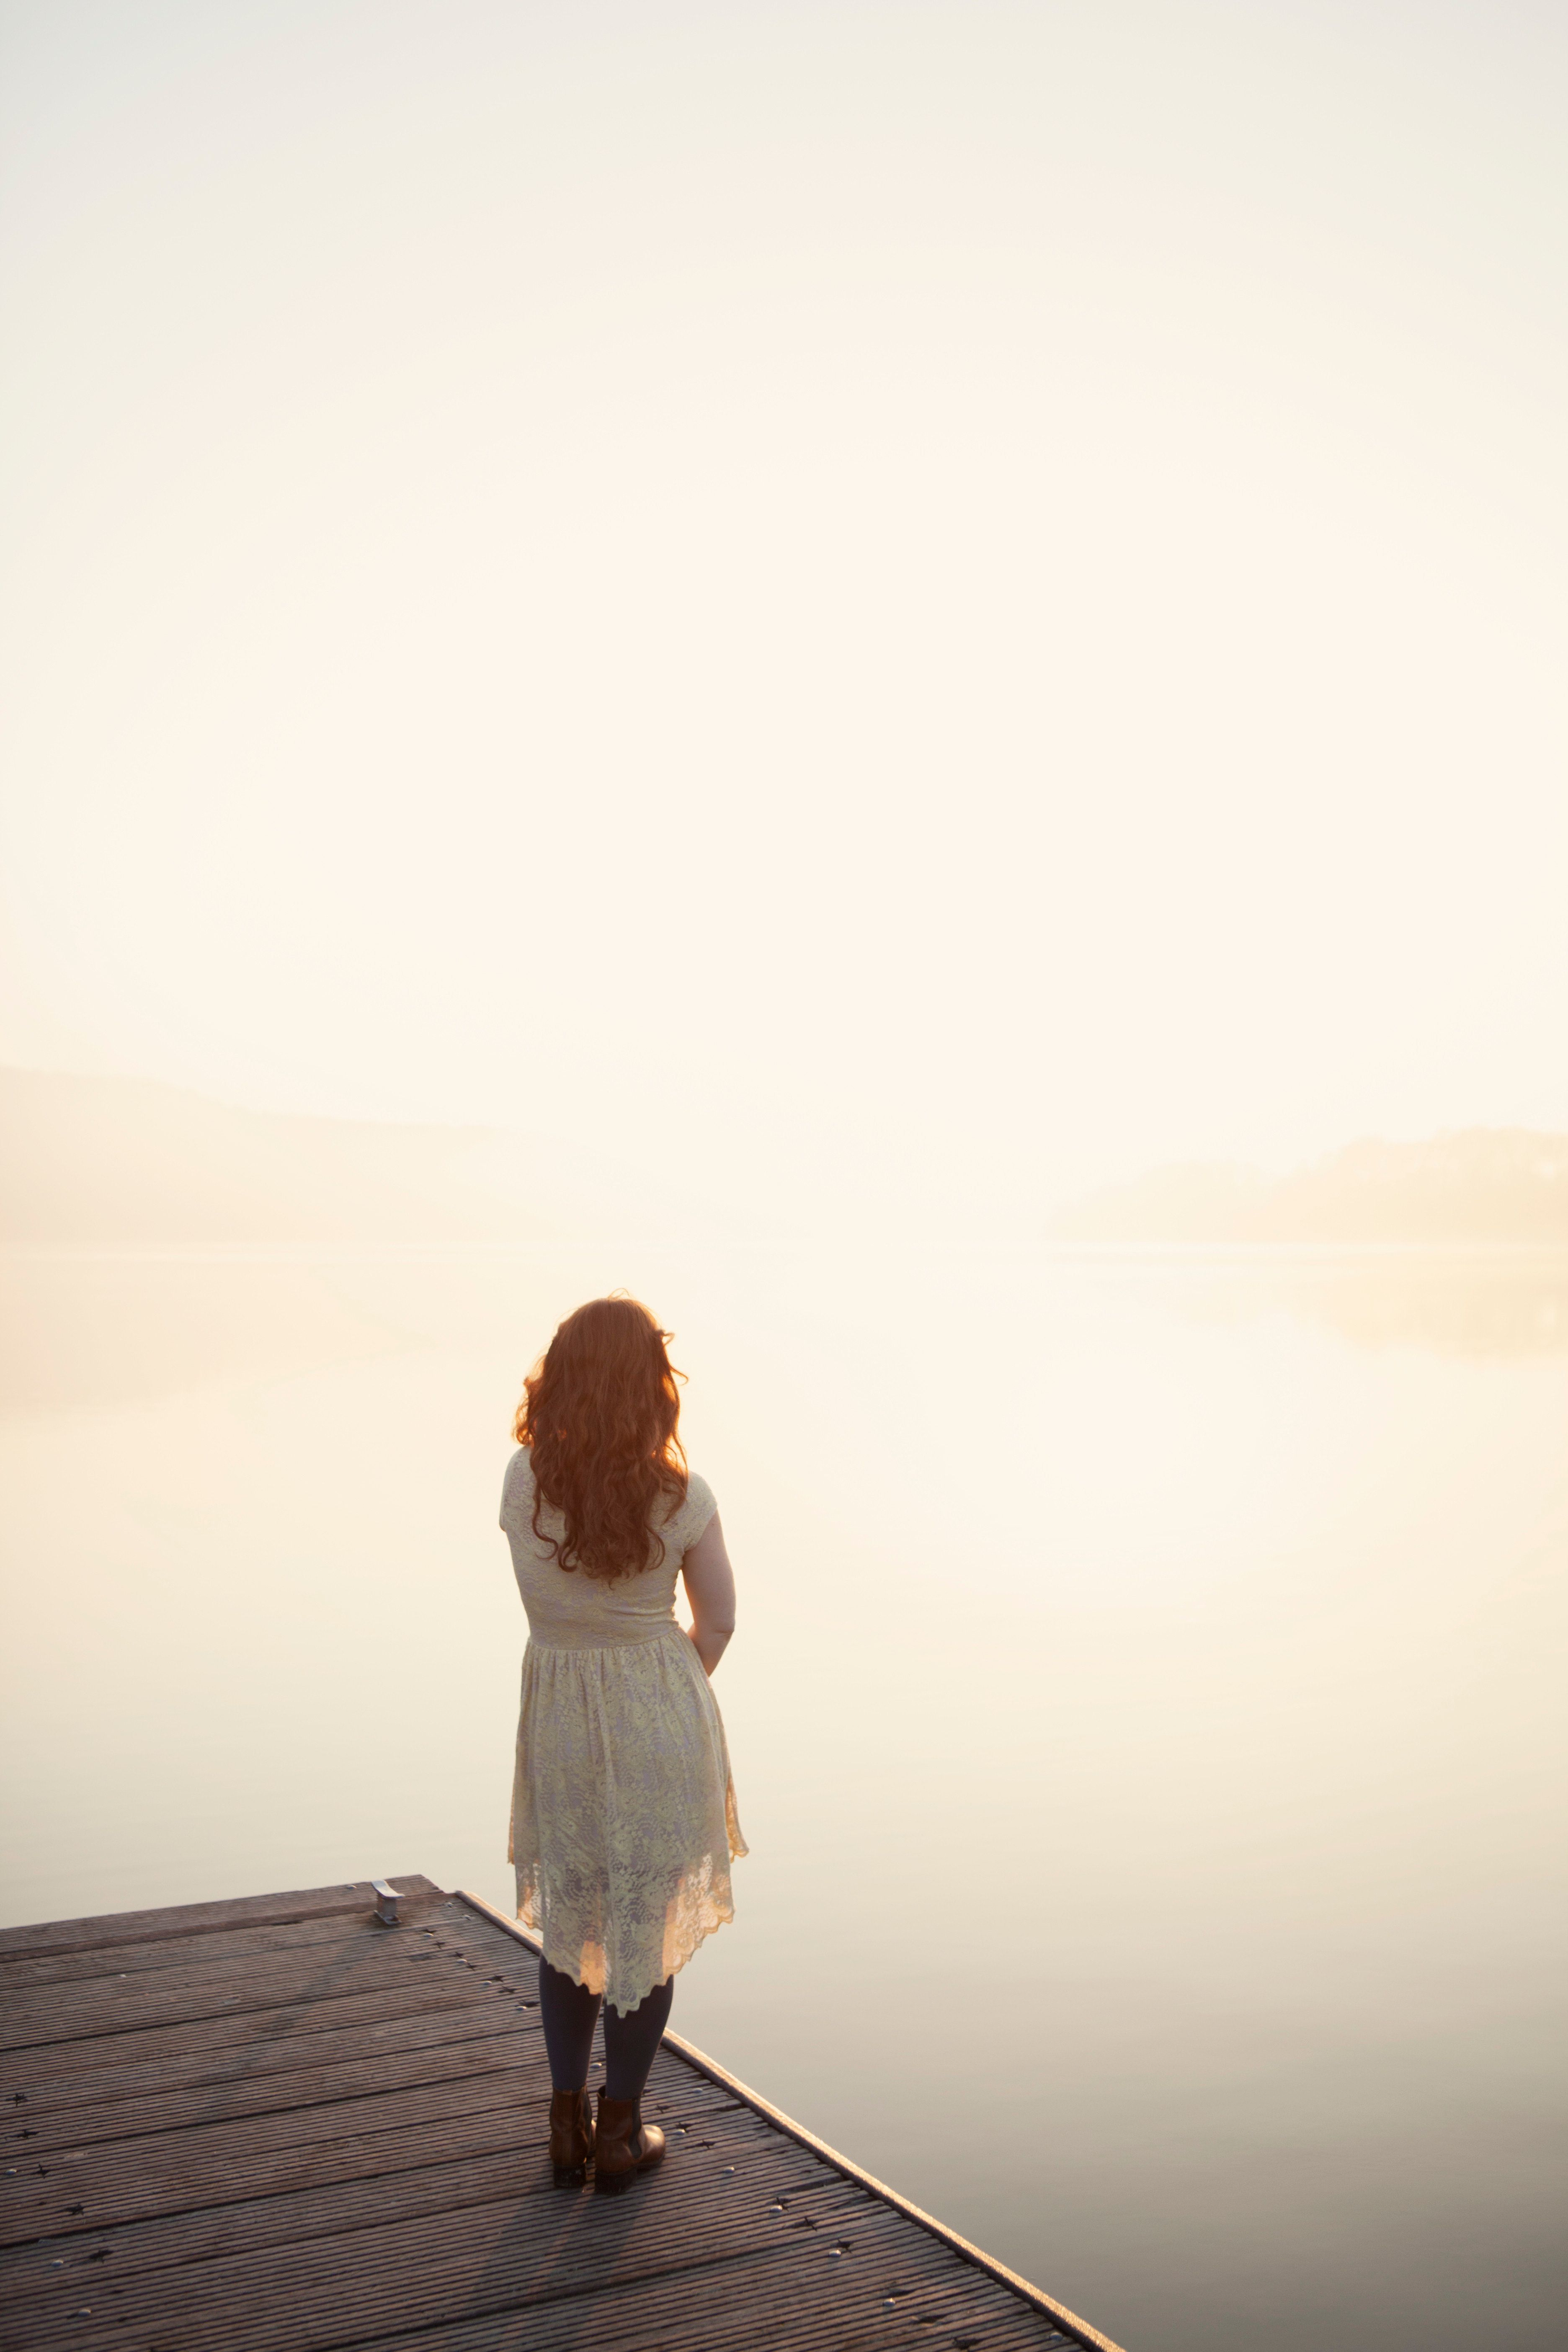 Germany, Essen, Redhead woman looks out onto lake at sunrise